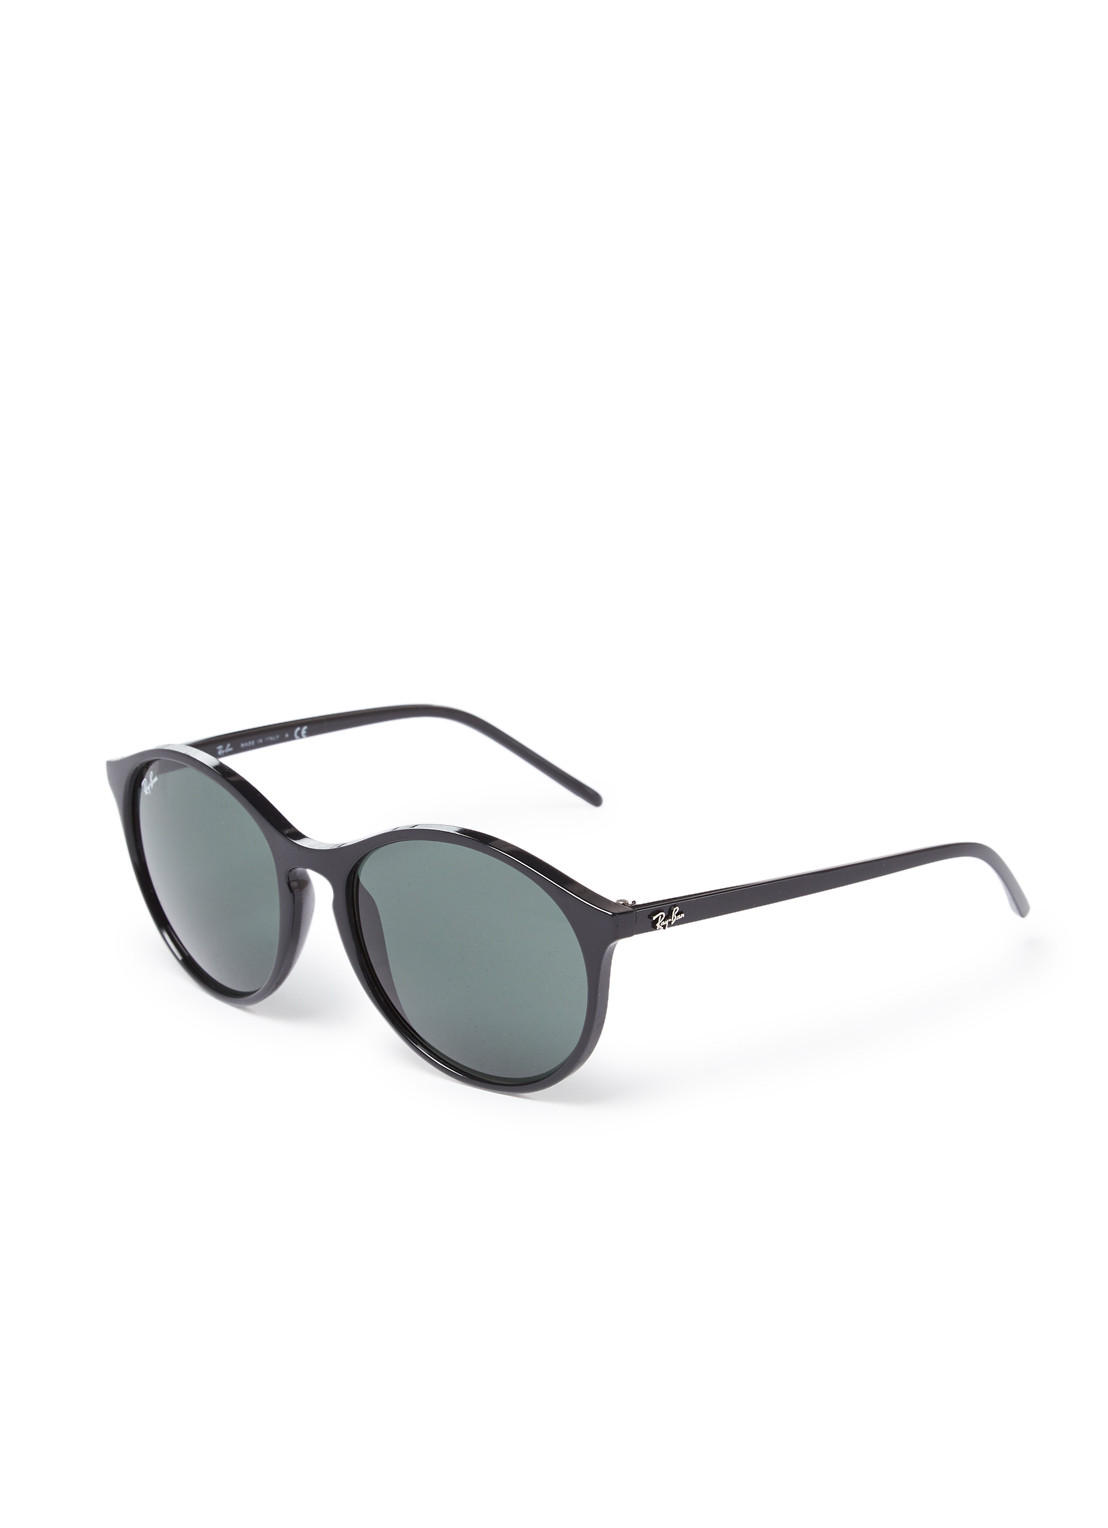 Ray Ban Zonnebril RB4371